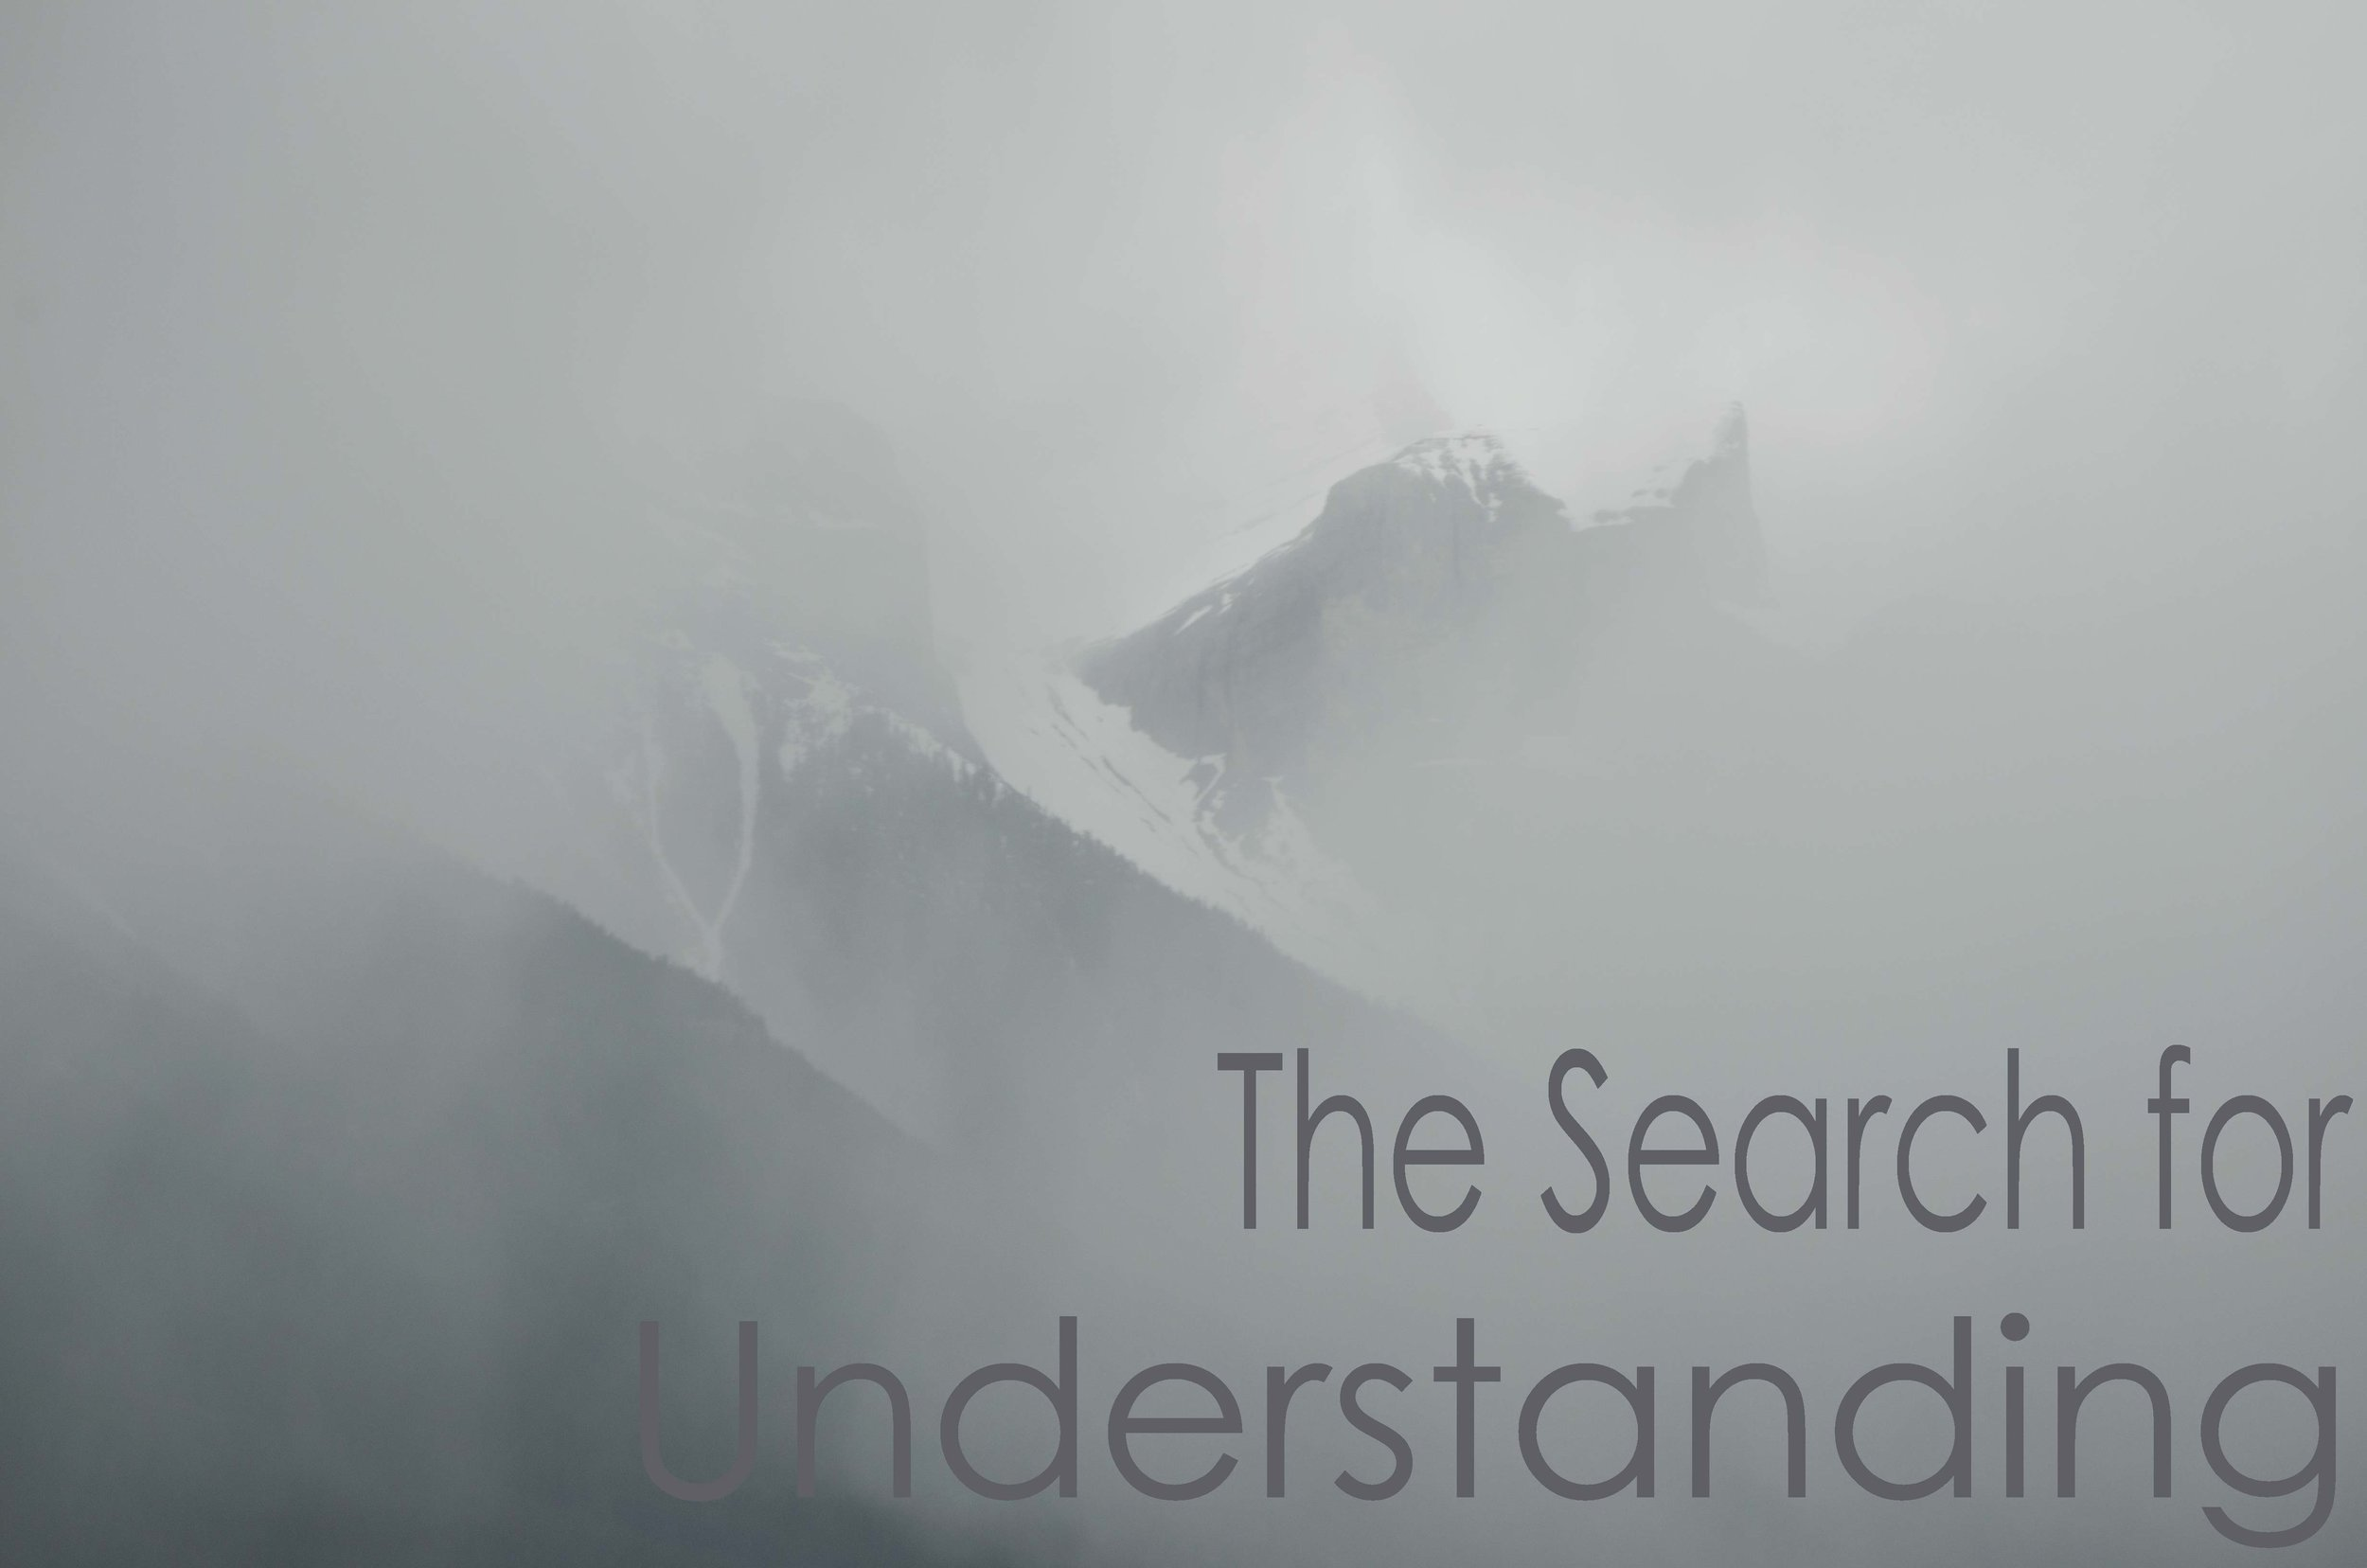 The-Search-for-Understanding